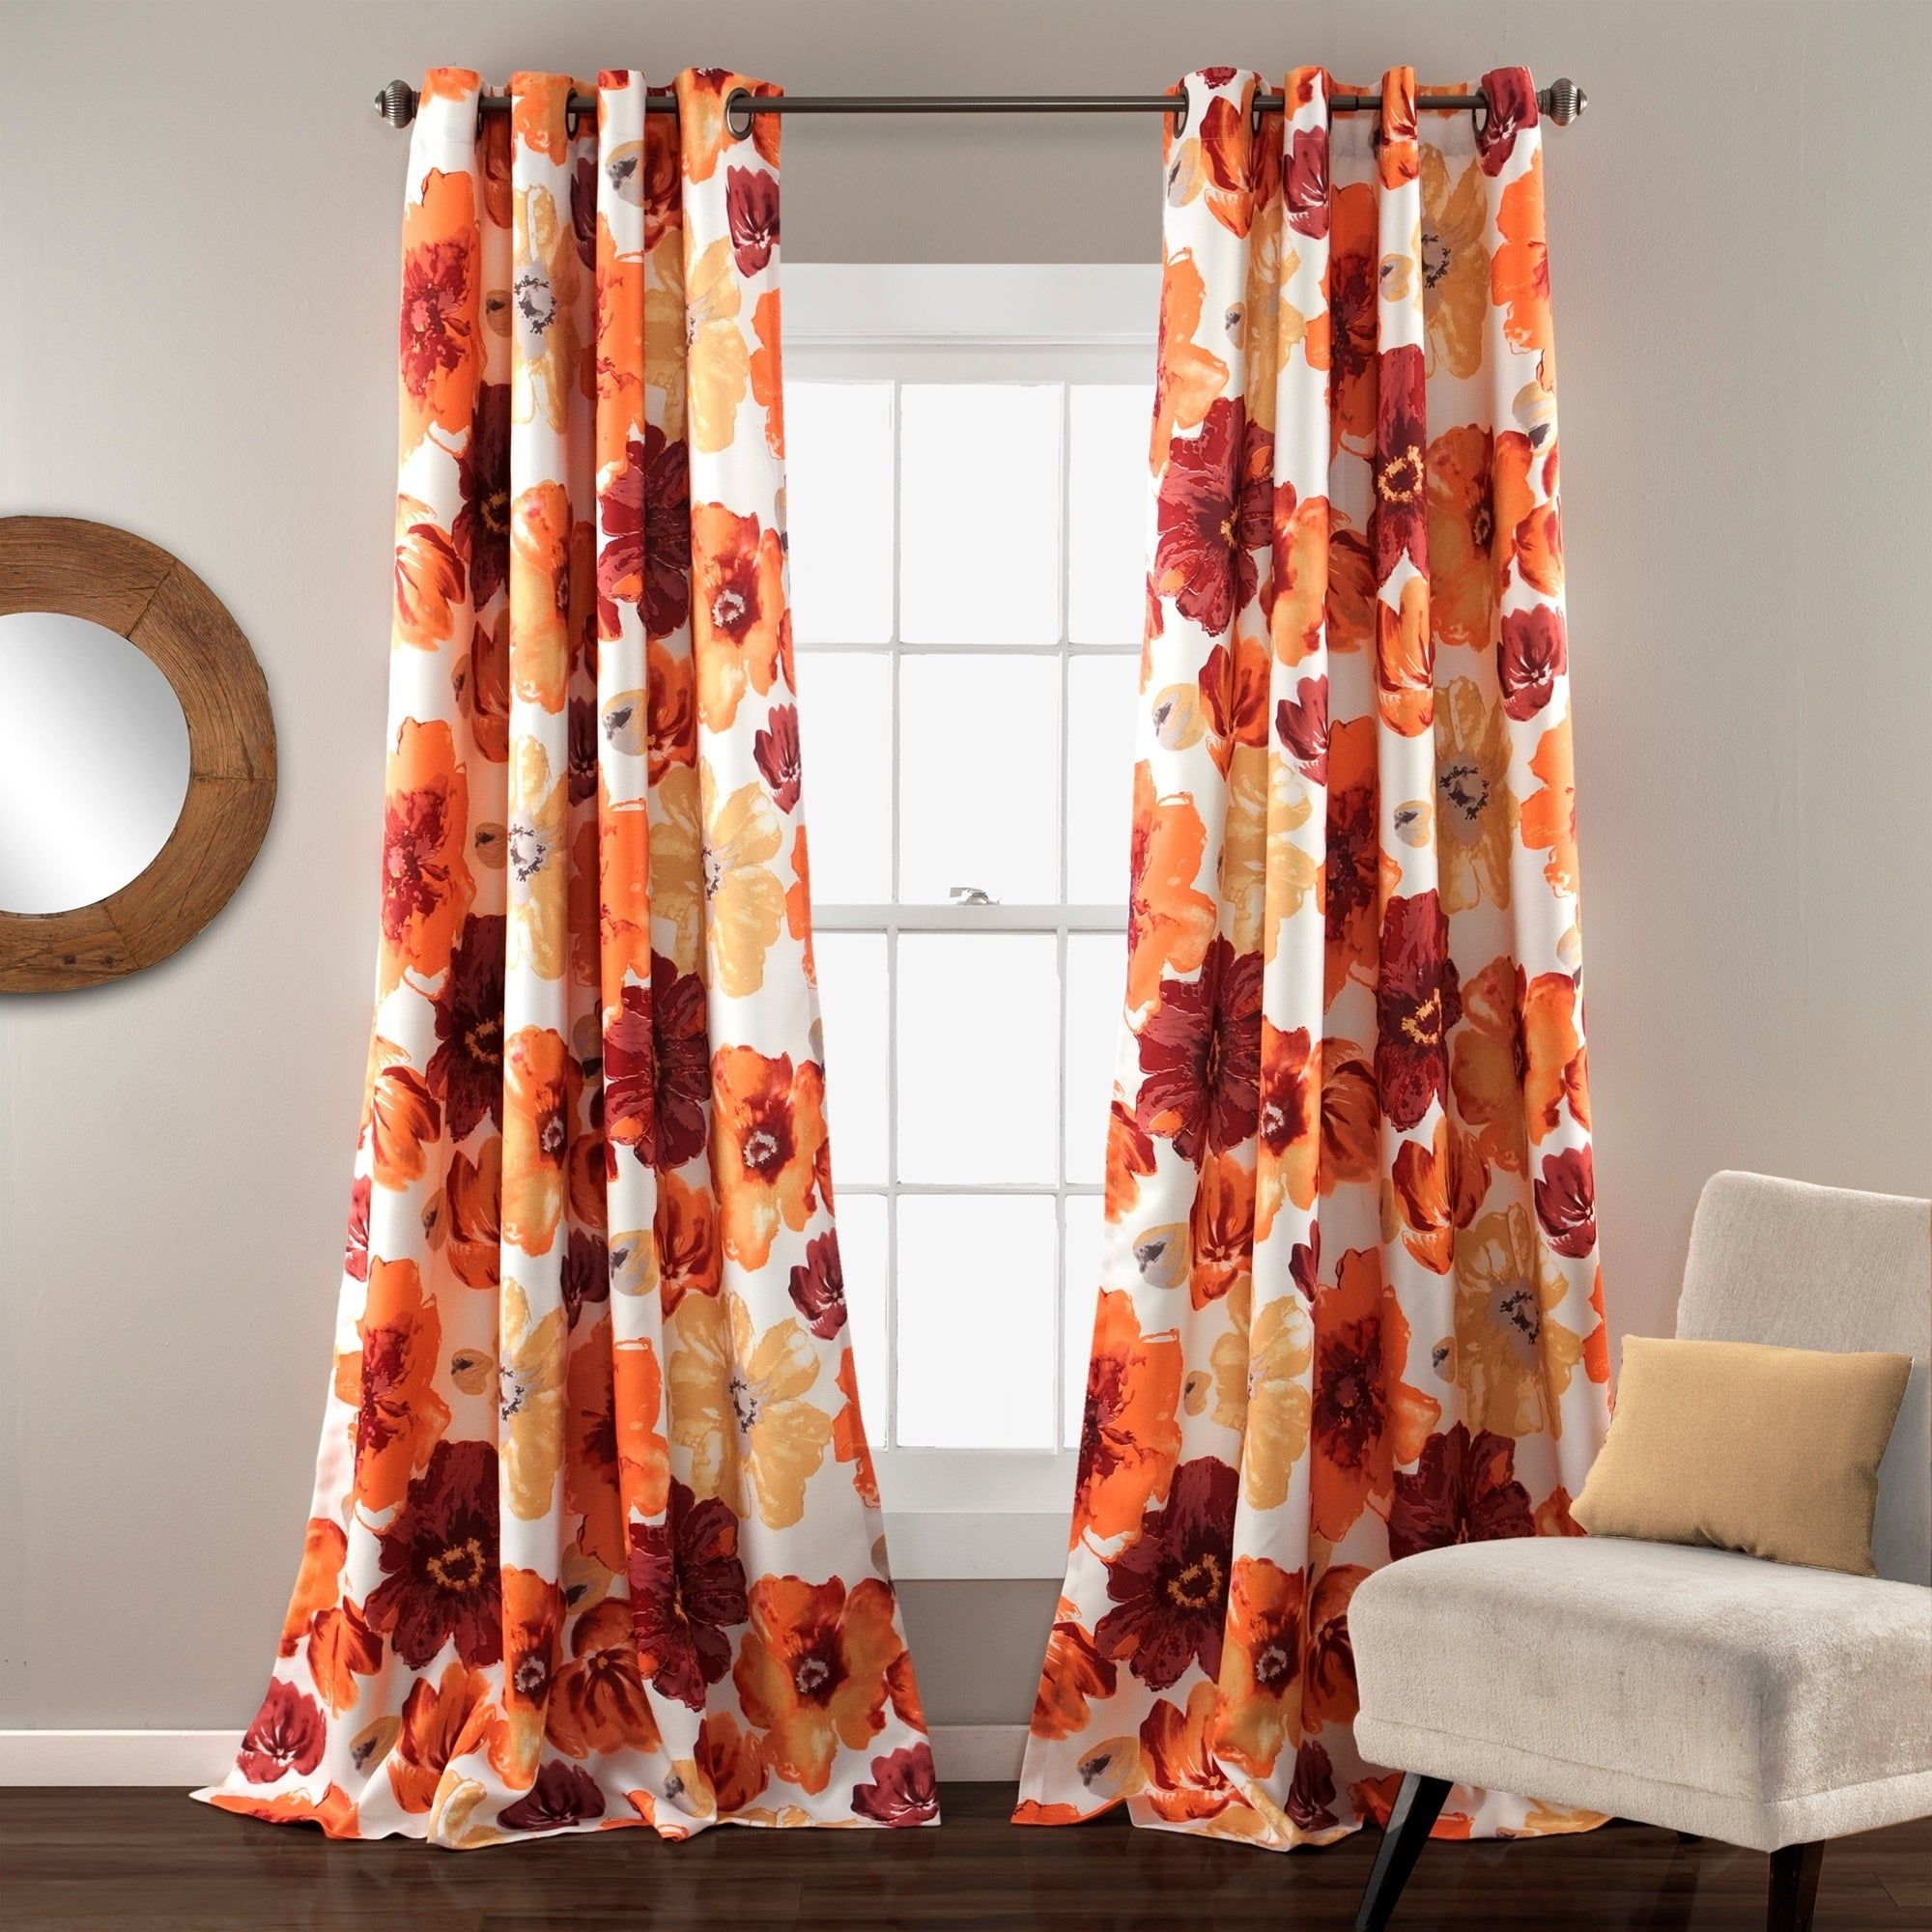 Lush Decor Leah Room Darkening Curtain Panel Pair Regarding Fashionable Leah Room Darkening Curtain Panel Pairs (Gallery 10 of 20)